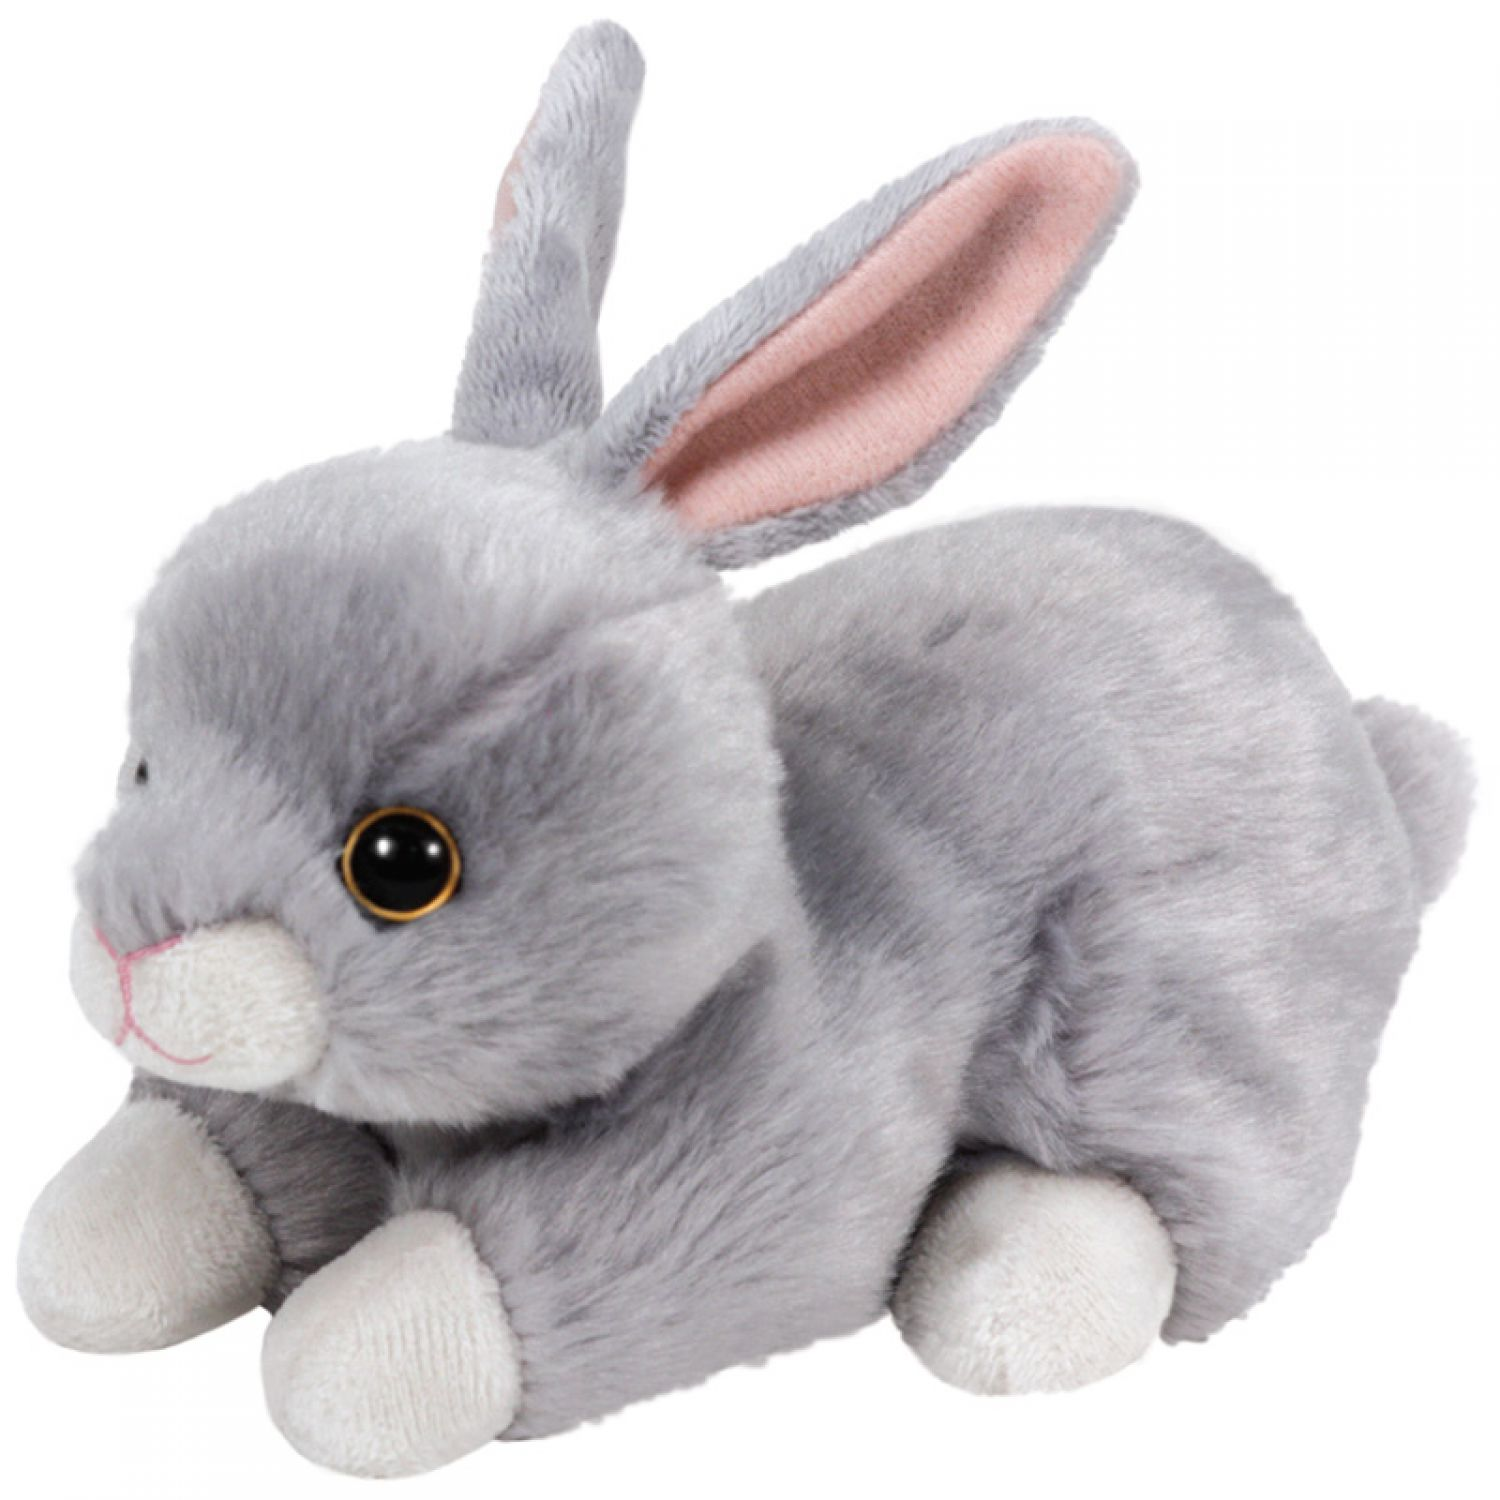 ty b b s beanie grignoteuse lapin en peluche gris 15cm peluche lapin en peluche ebay. Black Bedroom Furniture Sets. Home Design Ideas